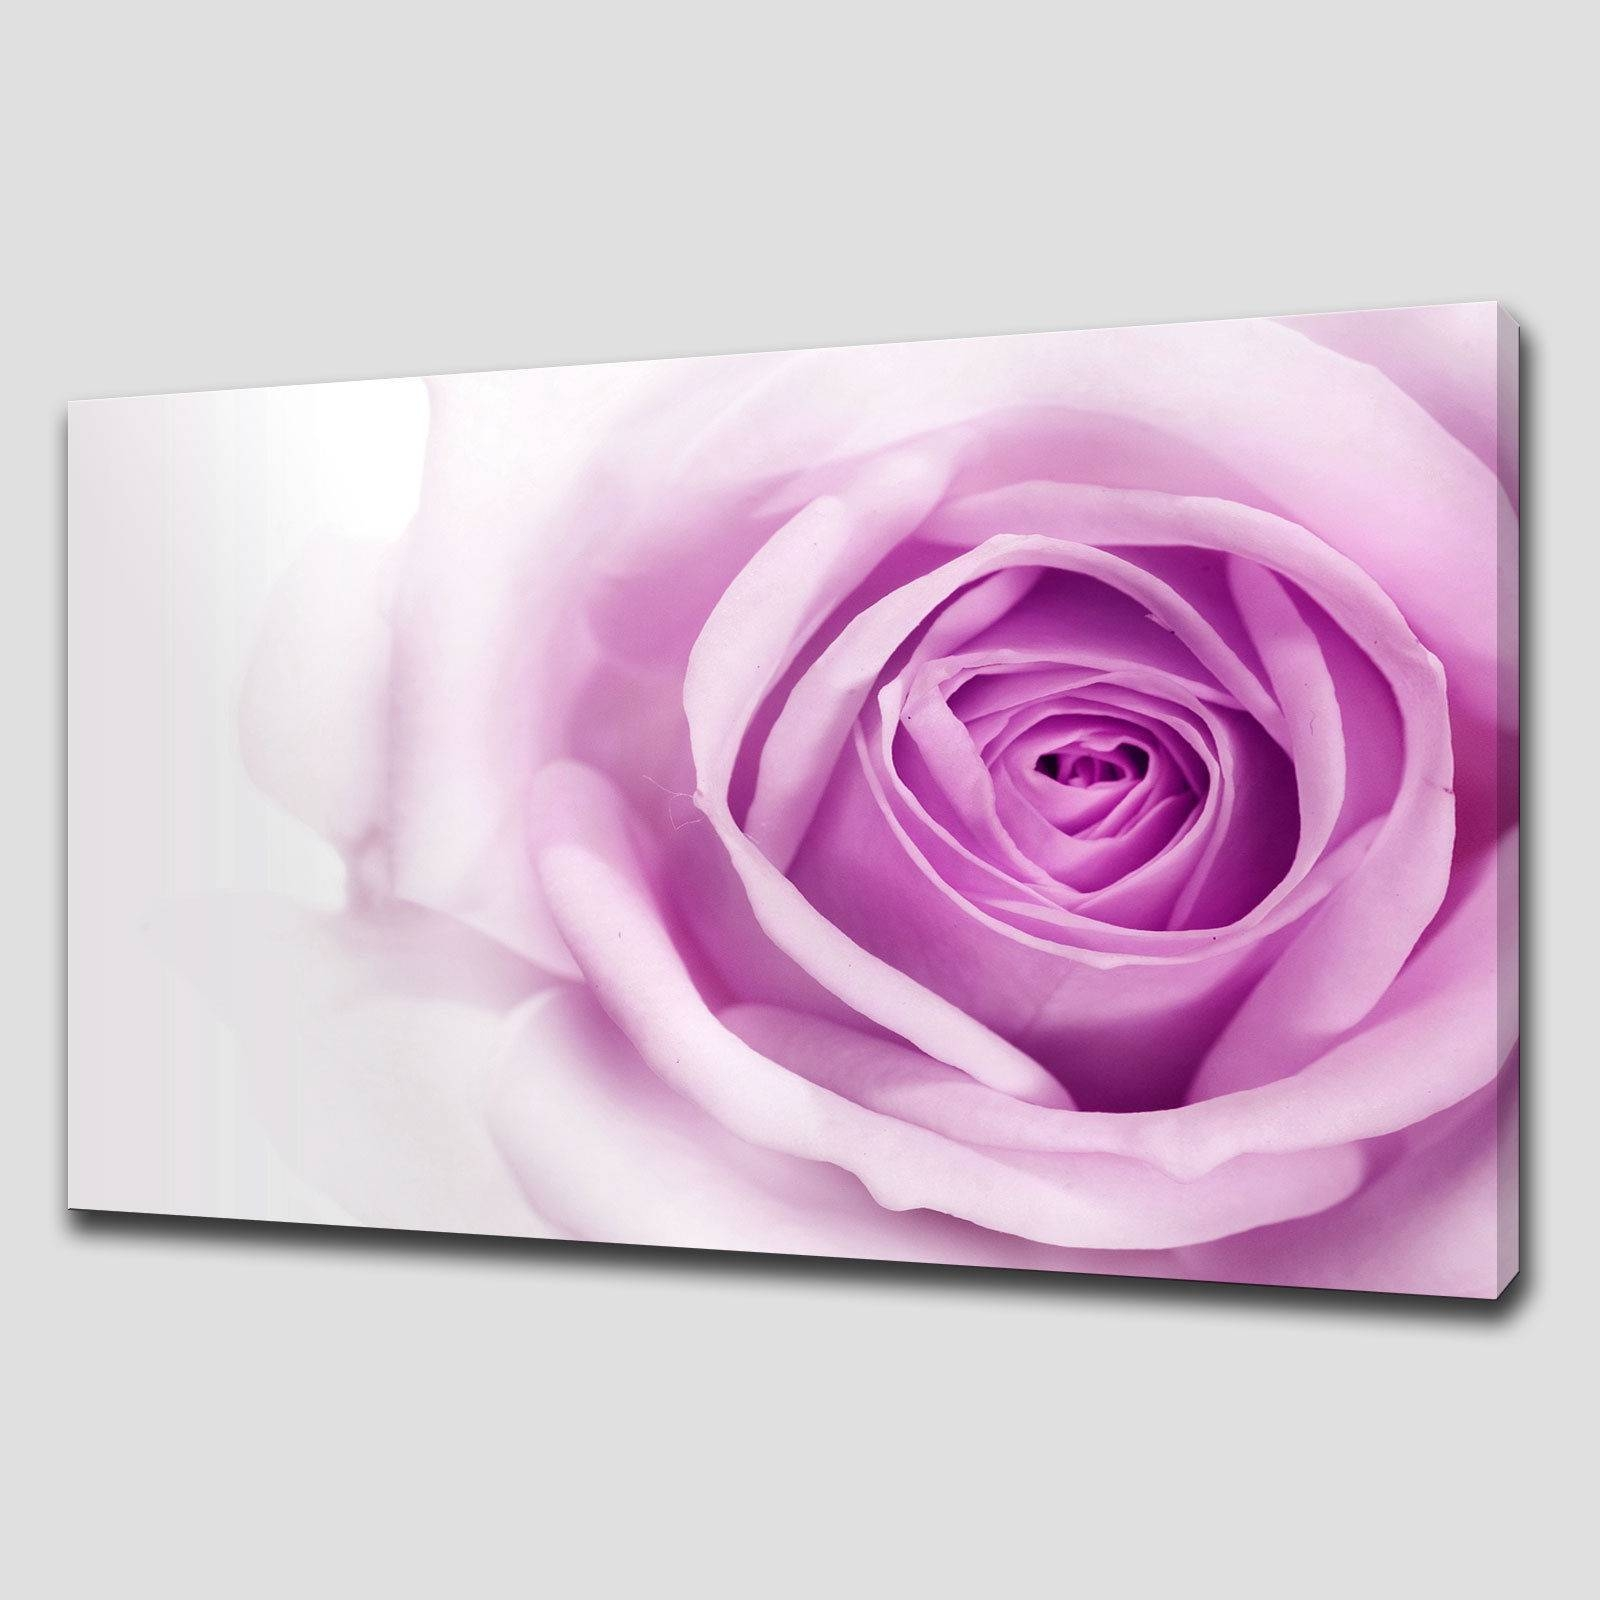 Wall Art Designs: Decor Red Rose Canvas Wall Art Large Oil Intended For Newest Red Rose Wall Art (View 19 of 20)